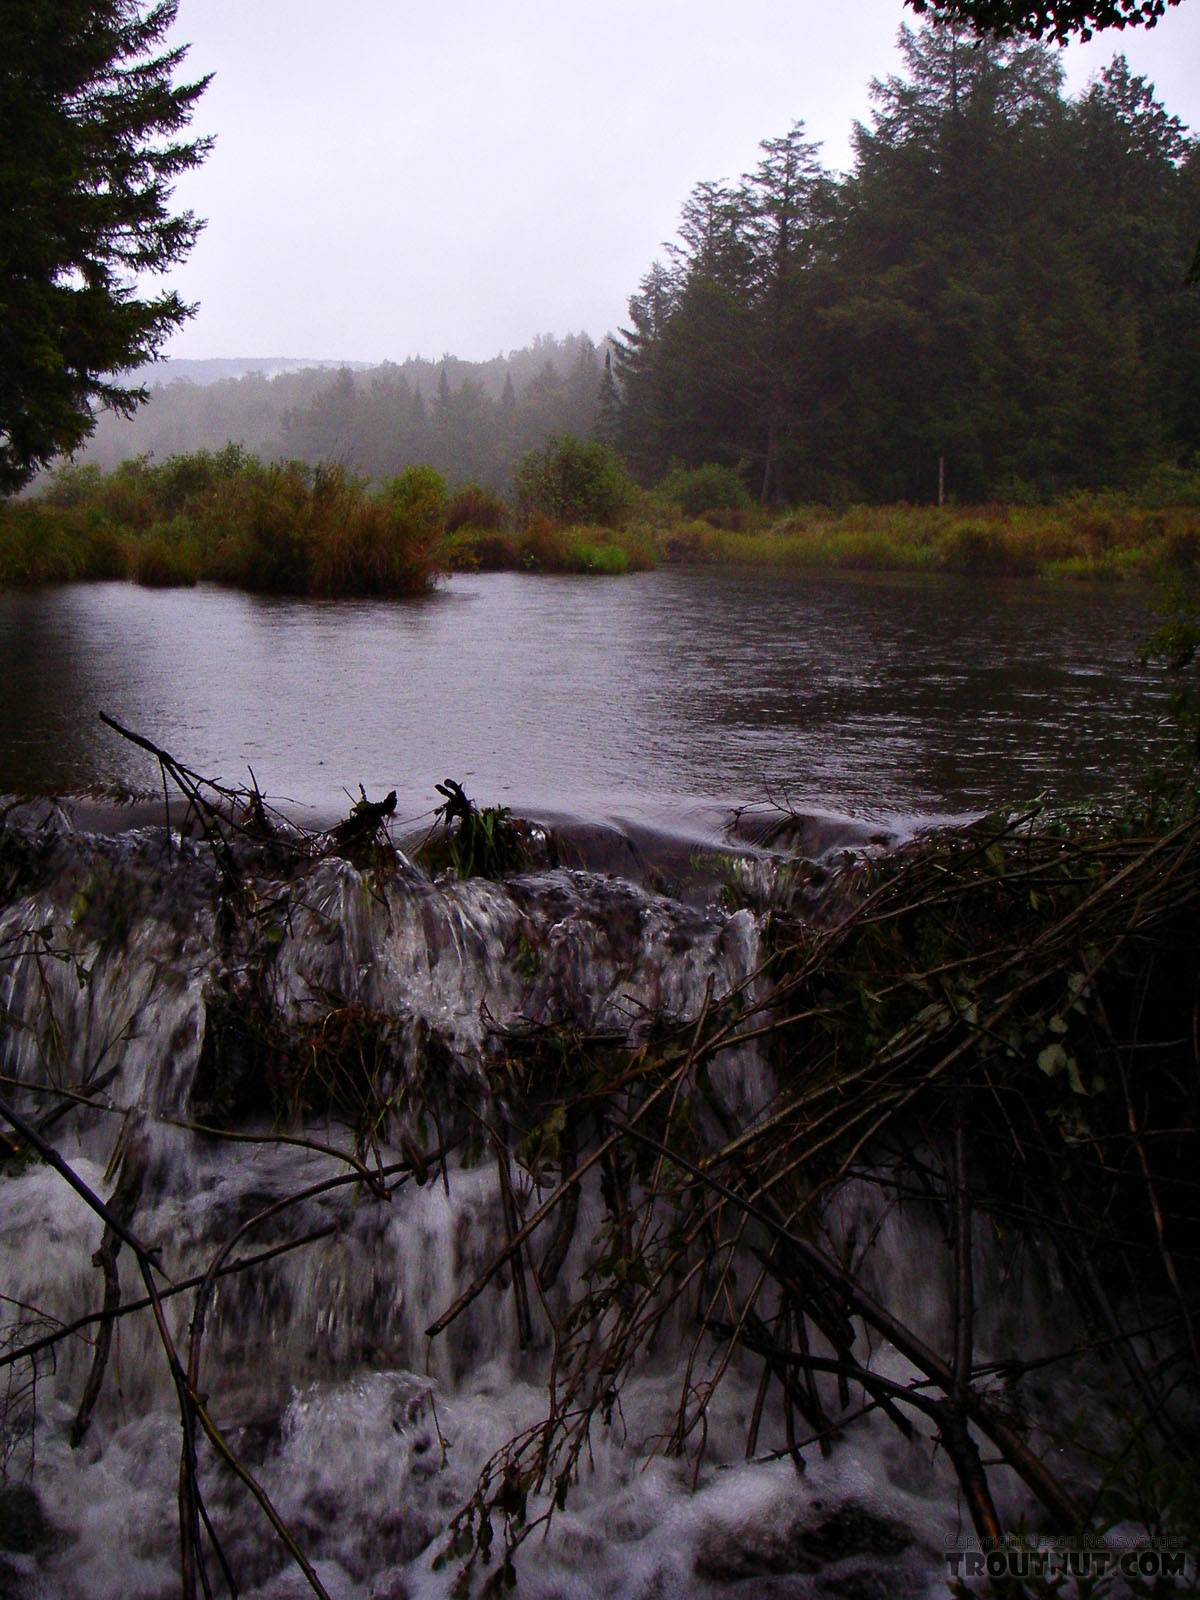 This beaver pond blocks a tributary in the headwaters if Willowemoc Creek in the Catskills.  It supposedly holds brook trout, but I didn't find them in my hasty effort as light waned on this rainy September evening. From Fir Brook in New York.